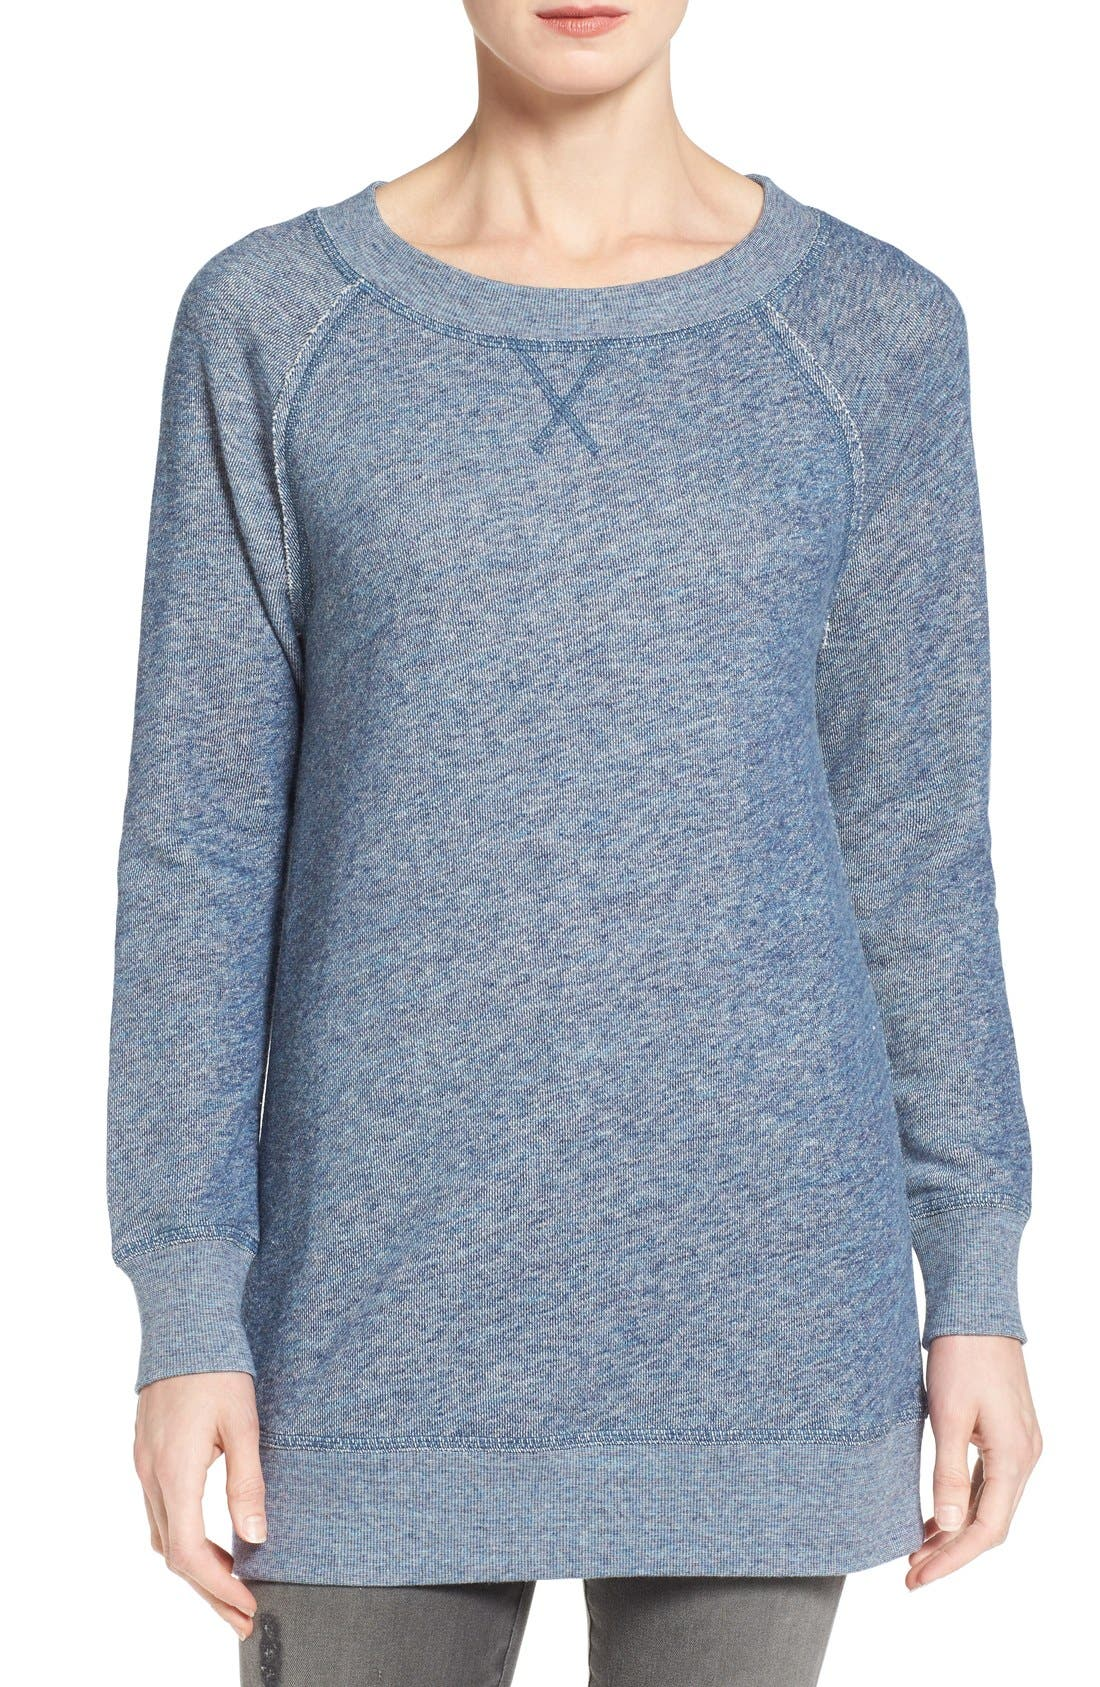 Alternate Image 1 Selected - Caslon® Space Dye Tunic Sweatshirt (Regular & Petite)